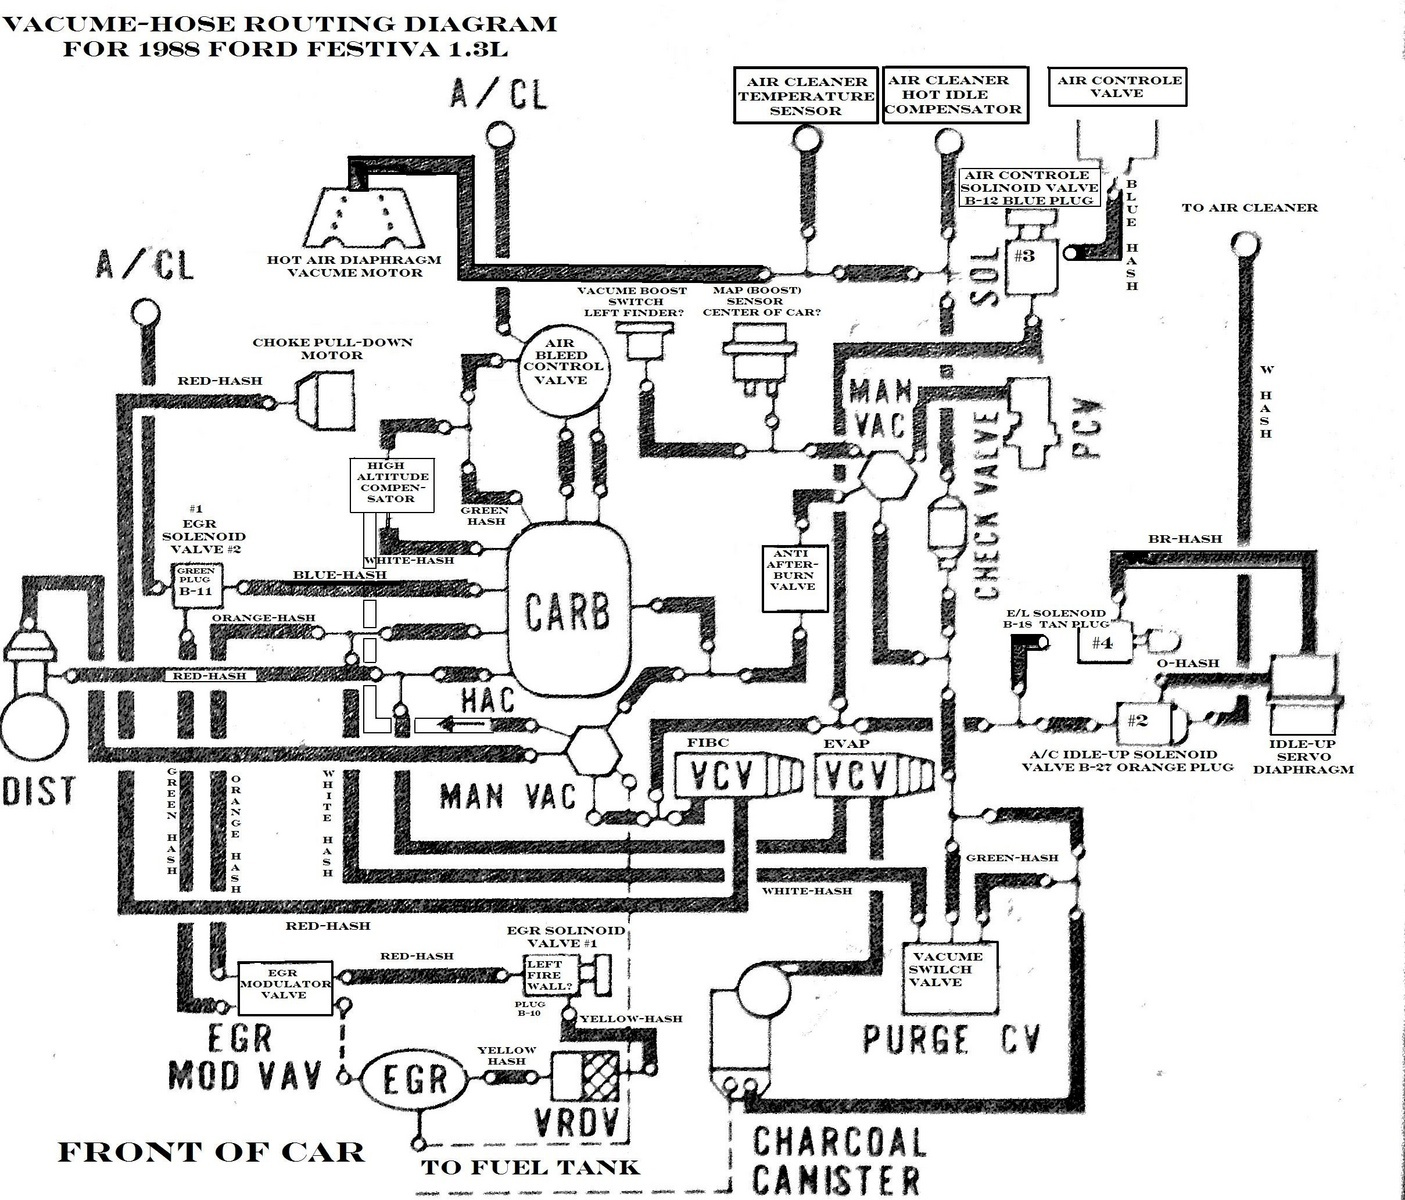 1990 Ford Festiva Wiring Diagram Simple 1980 Dual Tank Questions Getting Better Fuel Mileage Cargurus